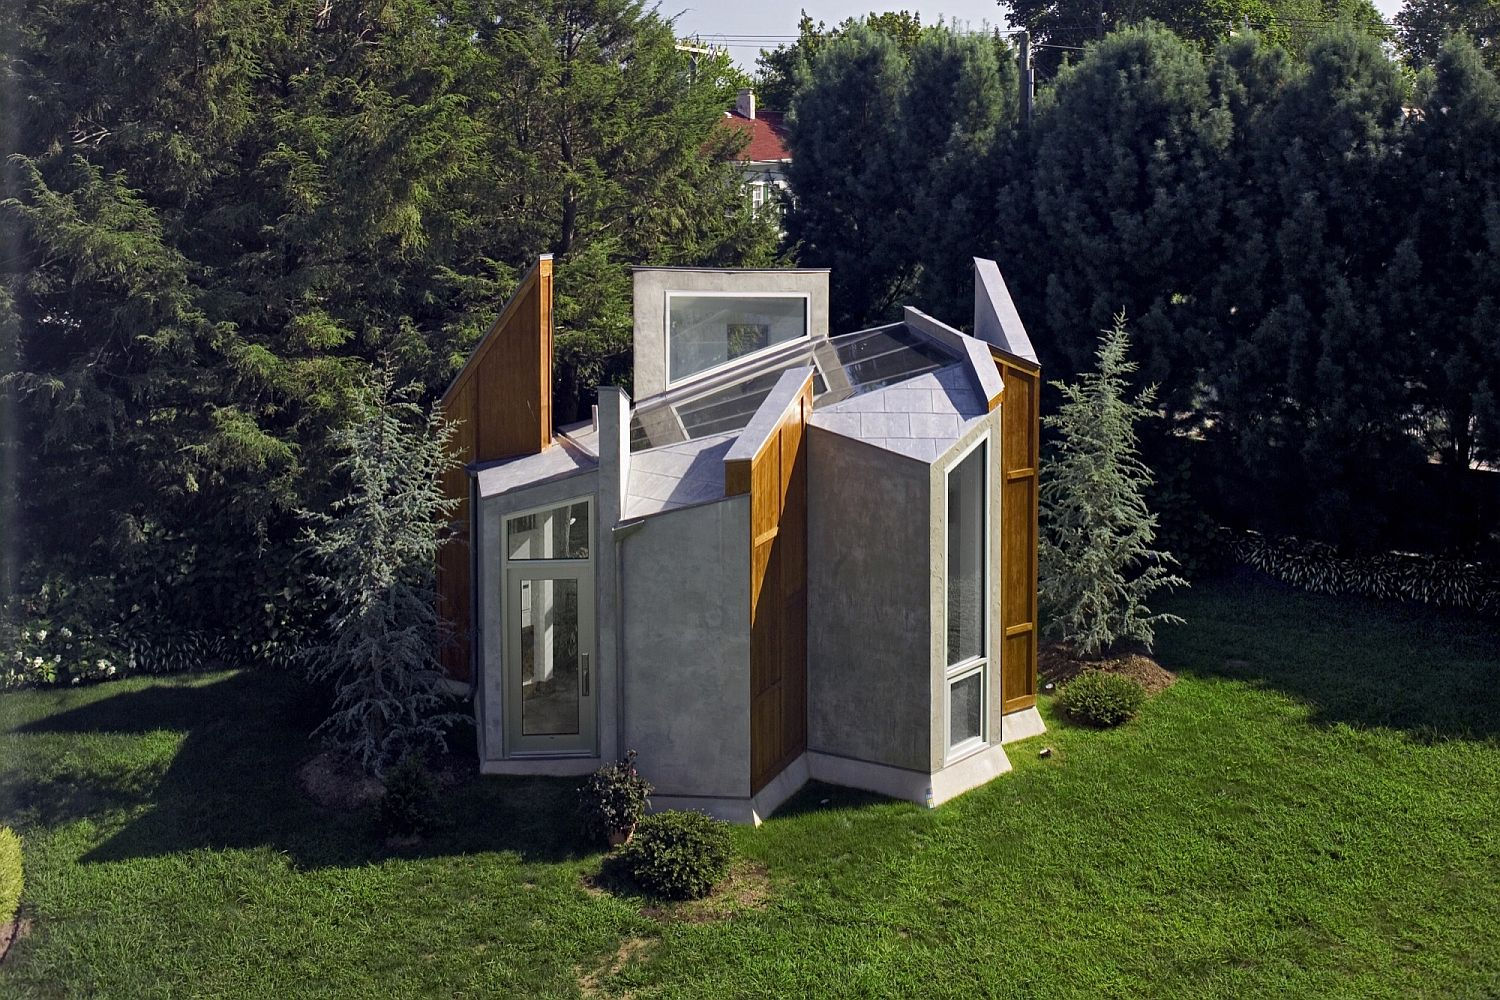 Form-of-the-unique-art-studio-and-office-is-inspired-by-the-wings-of-a-butterfly